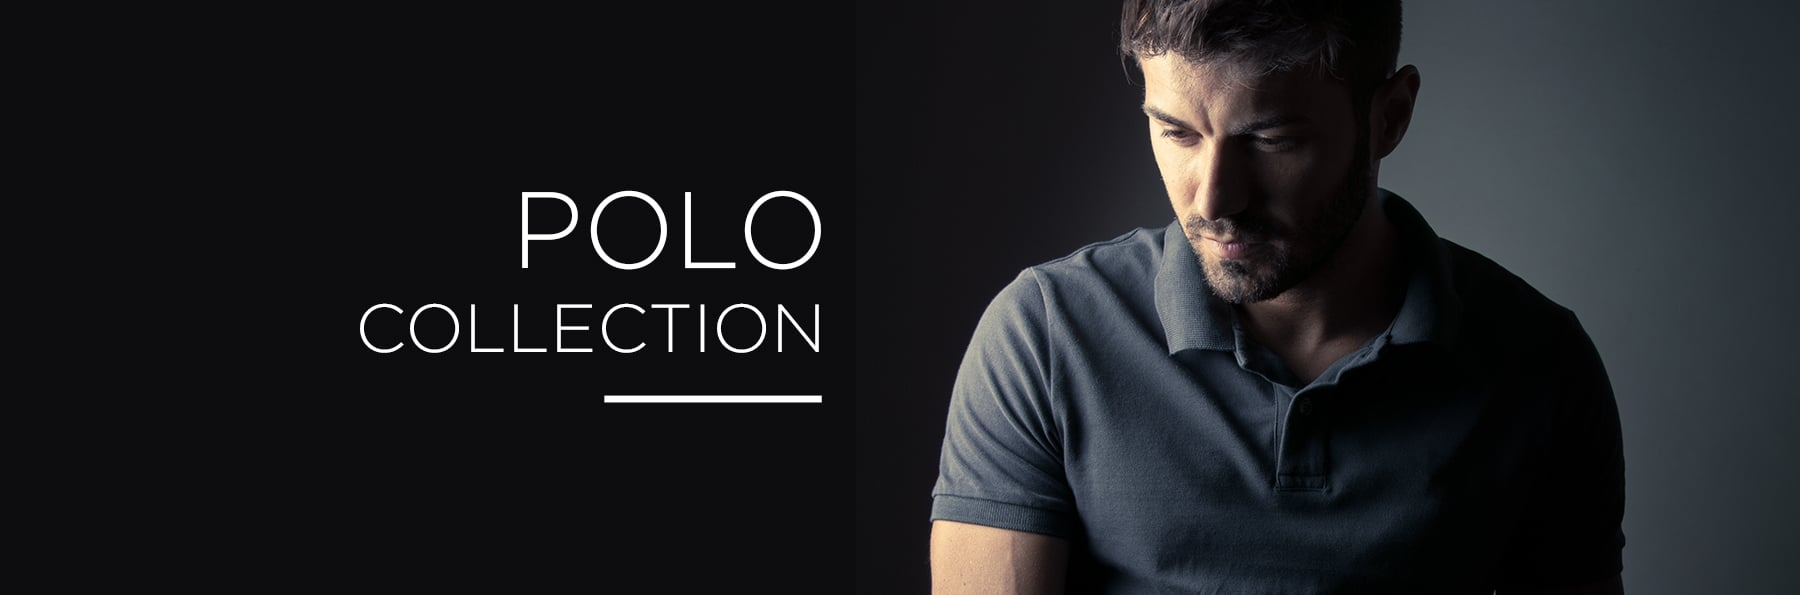 Polo Collection